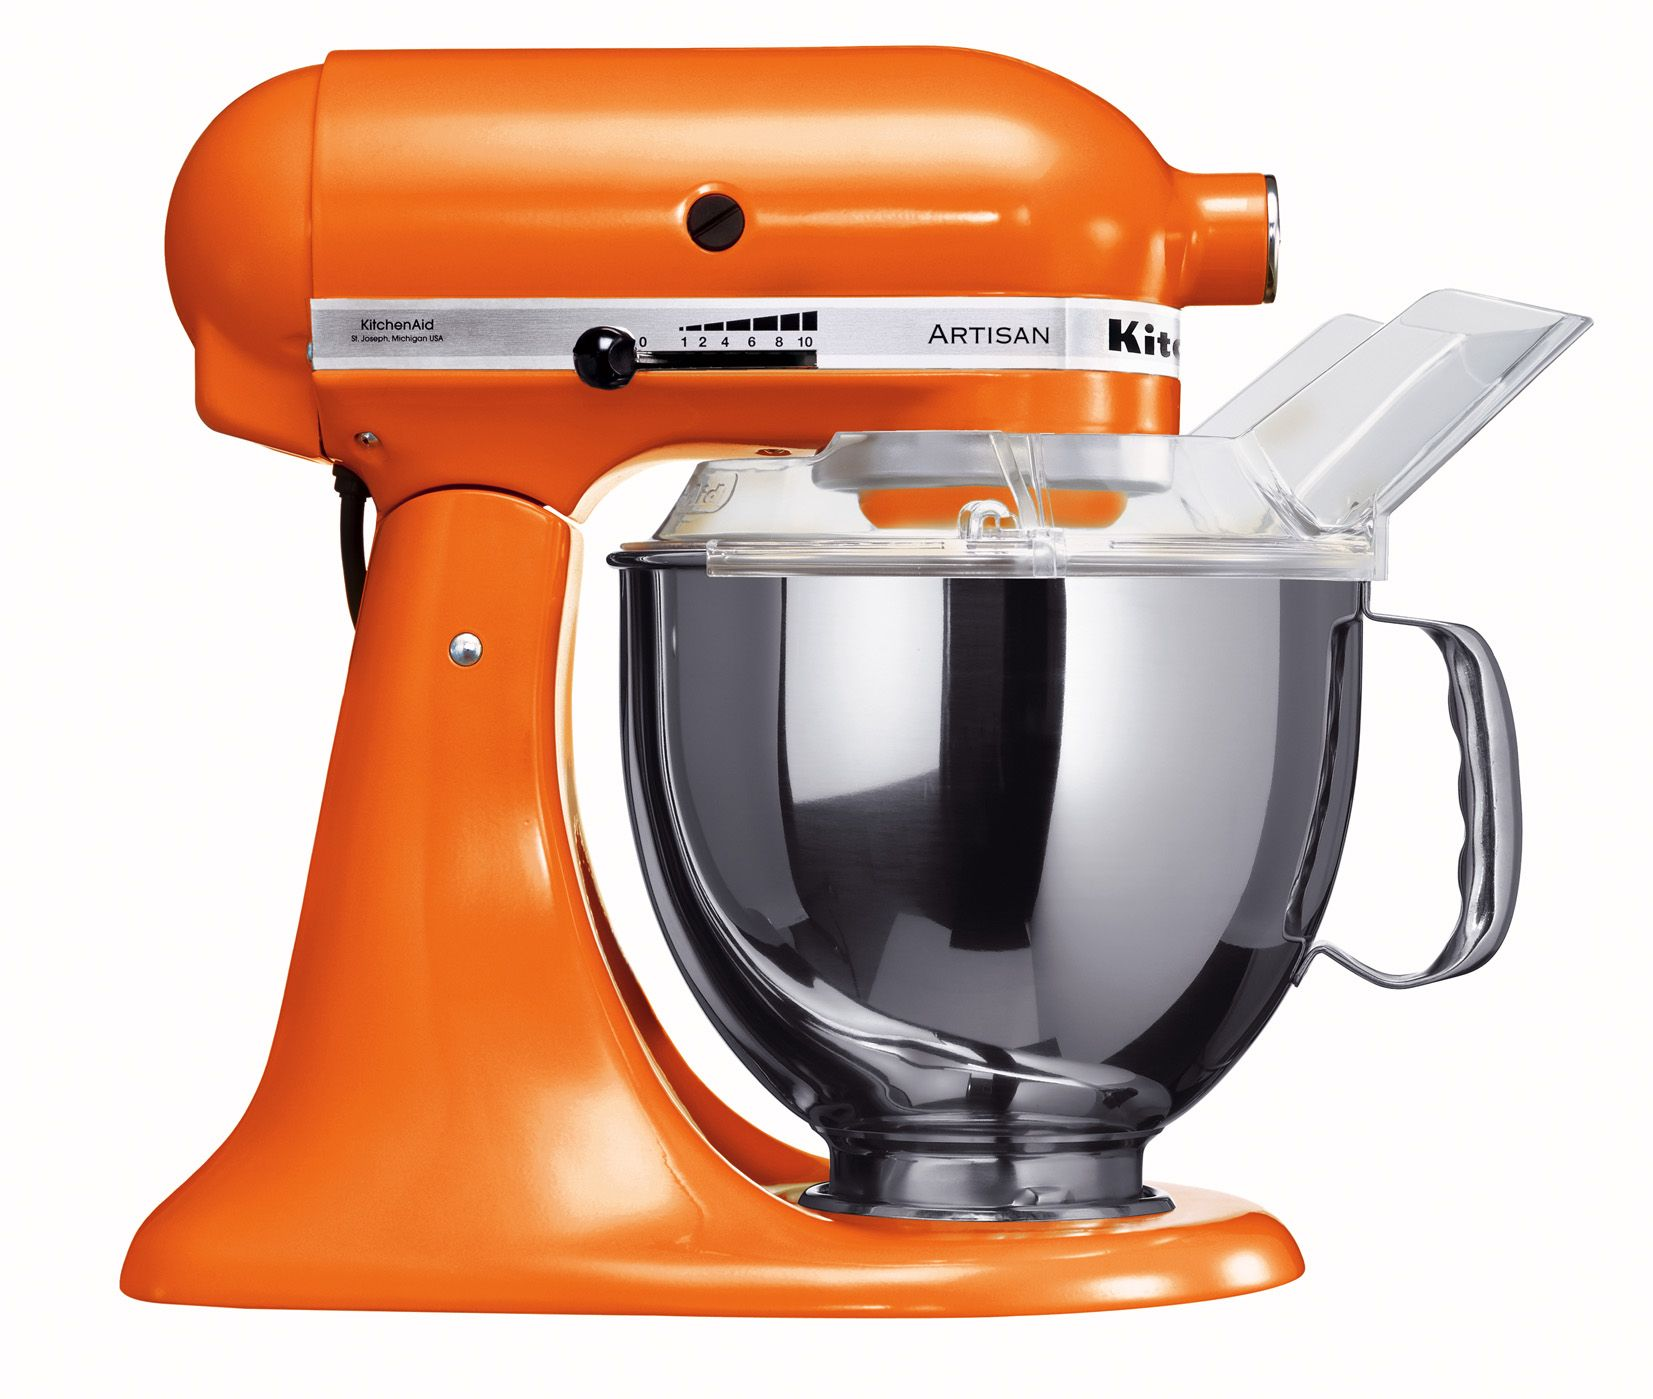 I Have This Mixer It Is So Awesome And Makes Baking Even More Fun Owl Kitchenkitchen Aid Mixerorange